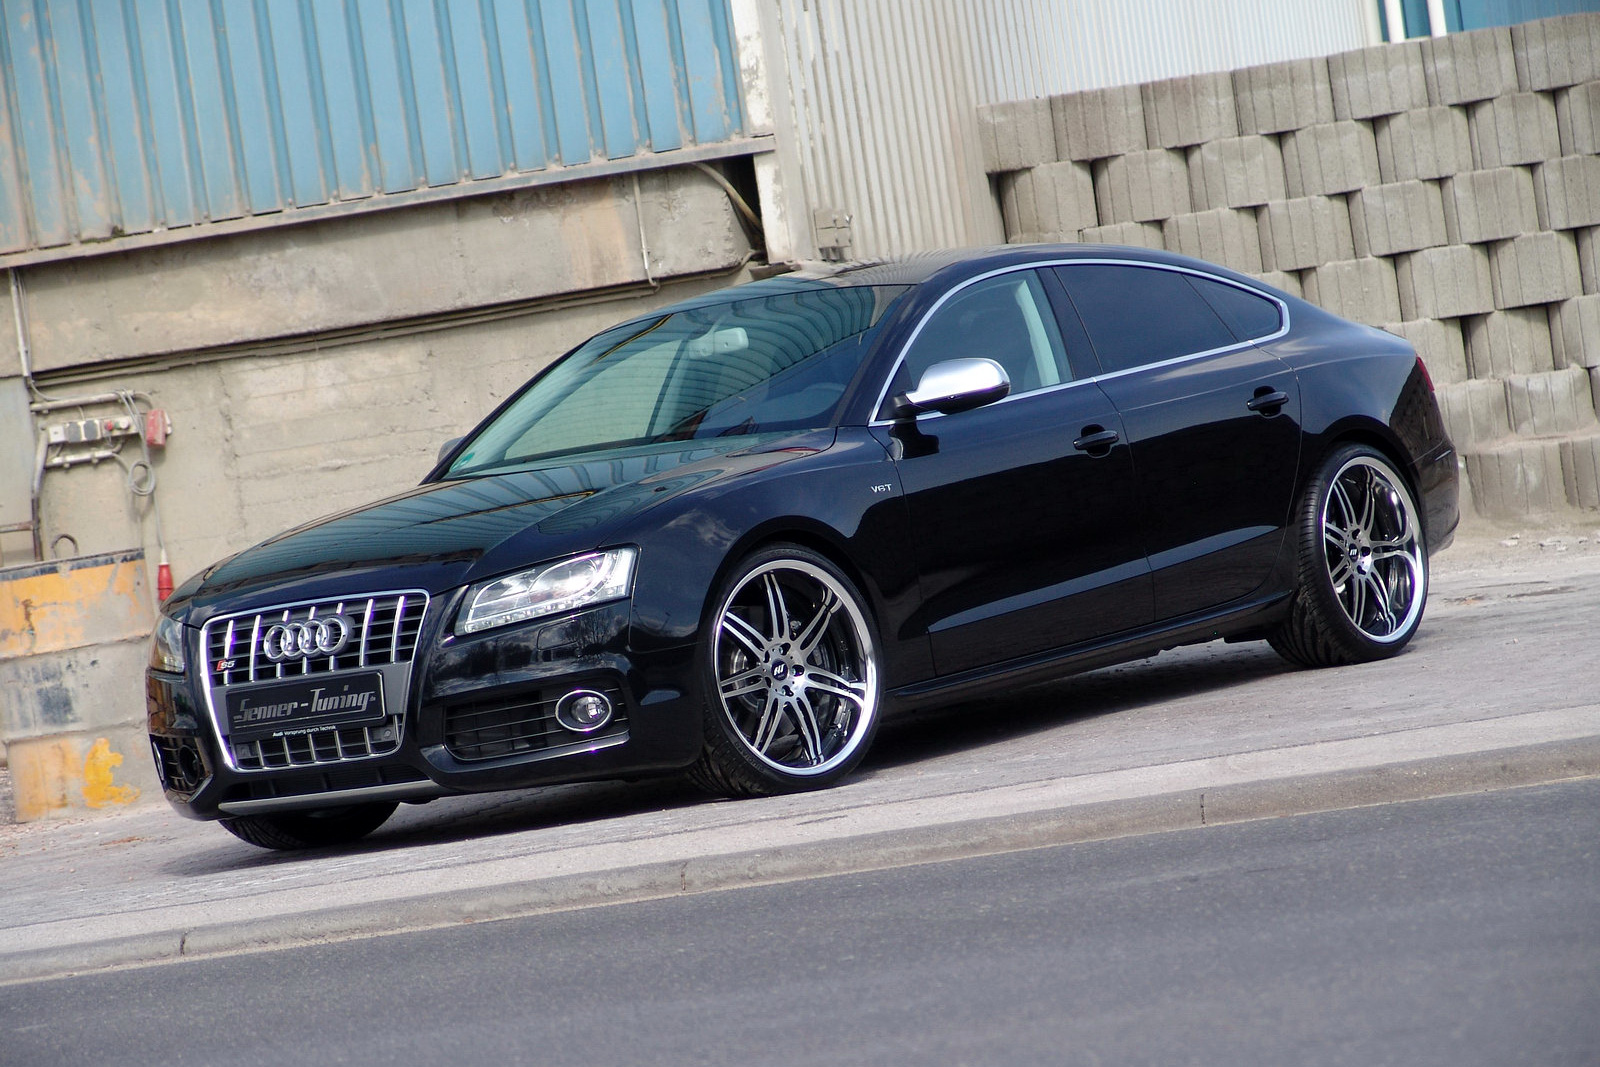 audi s5 sportback grand prix with 375hp by senner tuning carscoops. Black Bedroom Furniture Sets. Home Design Ideas